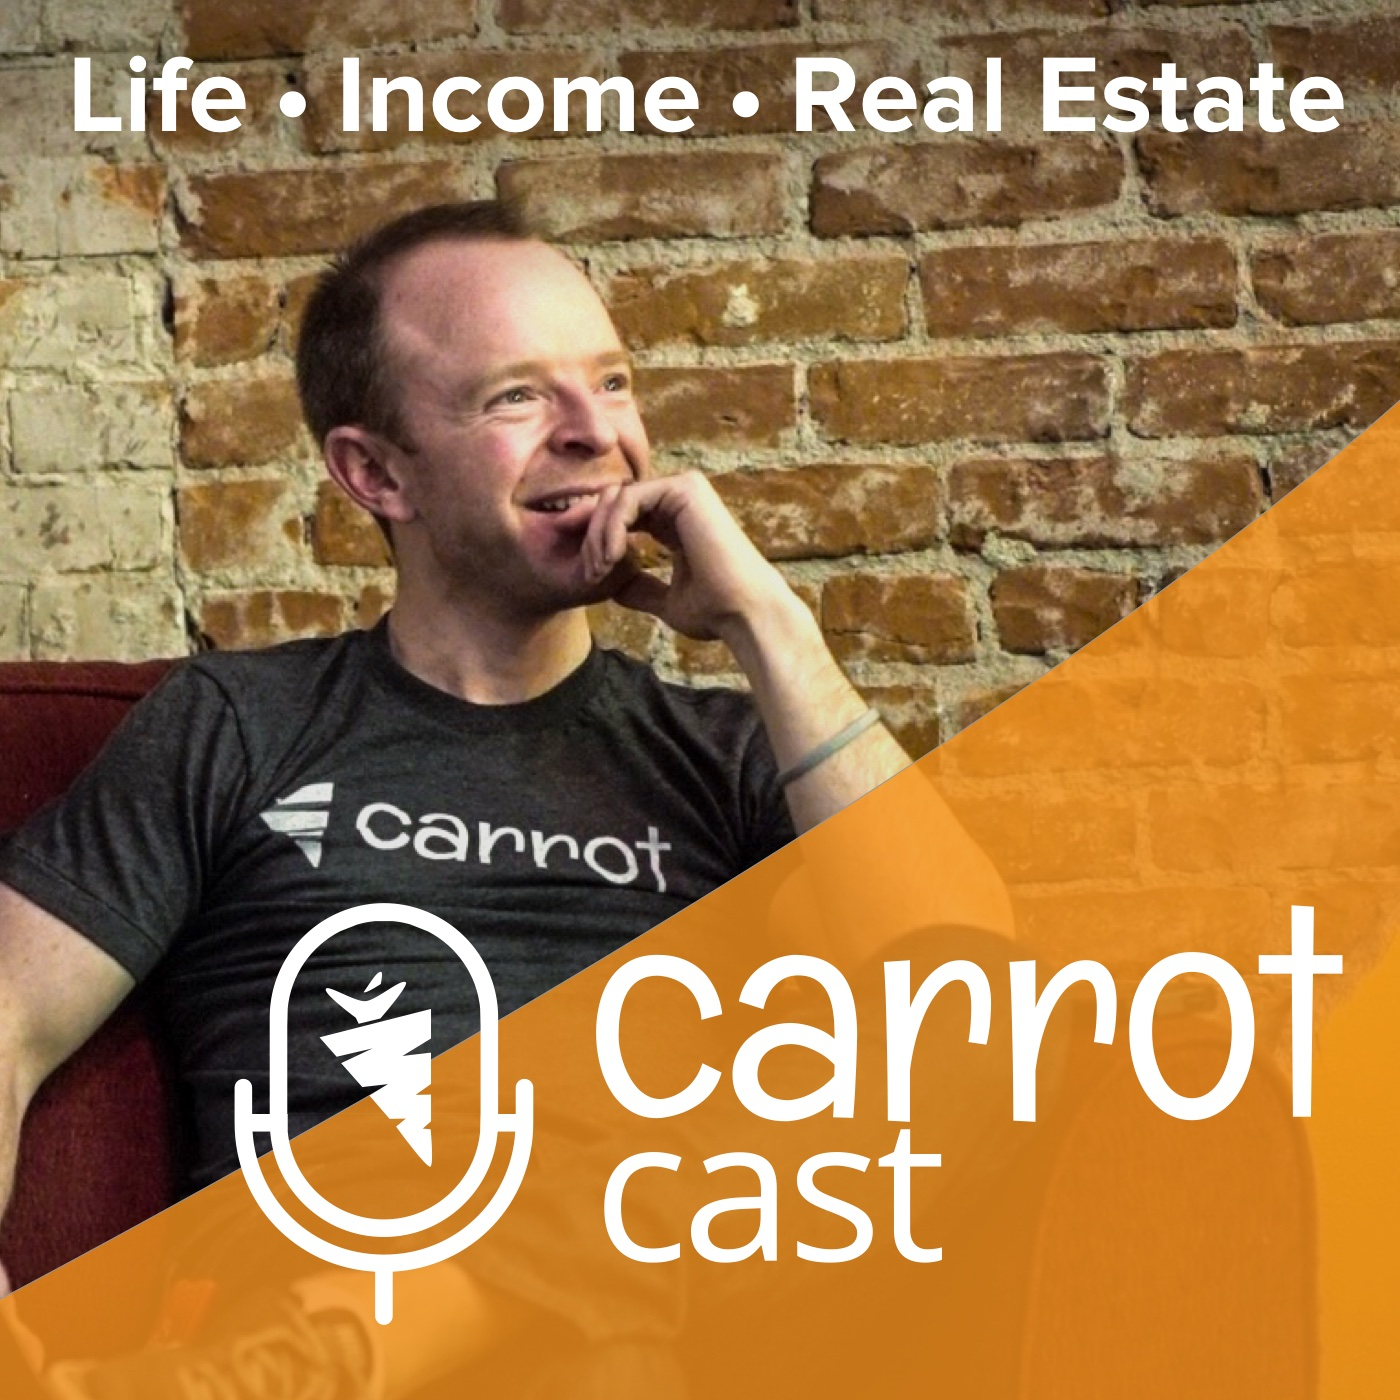 EP 18: The Keys To Our Business Partnership w/ Trevor + Carrot Co-Founder Chris Carr